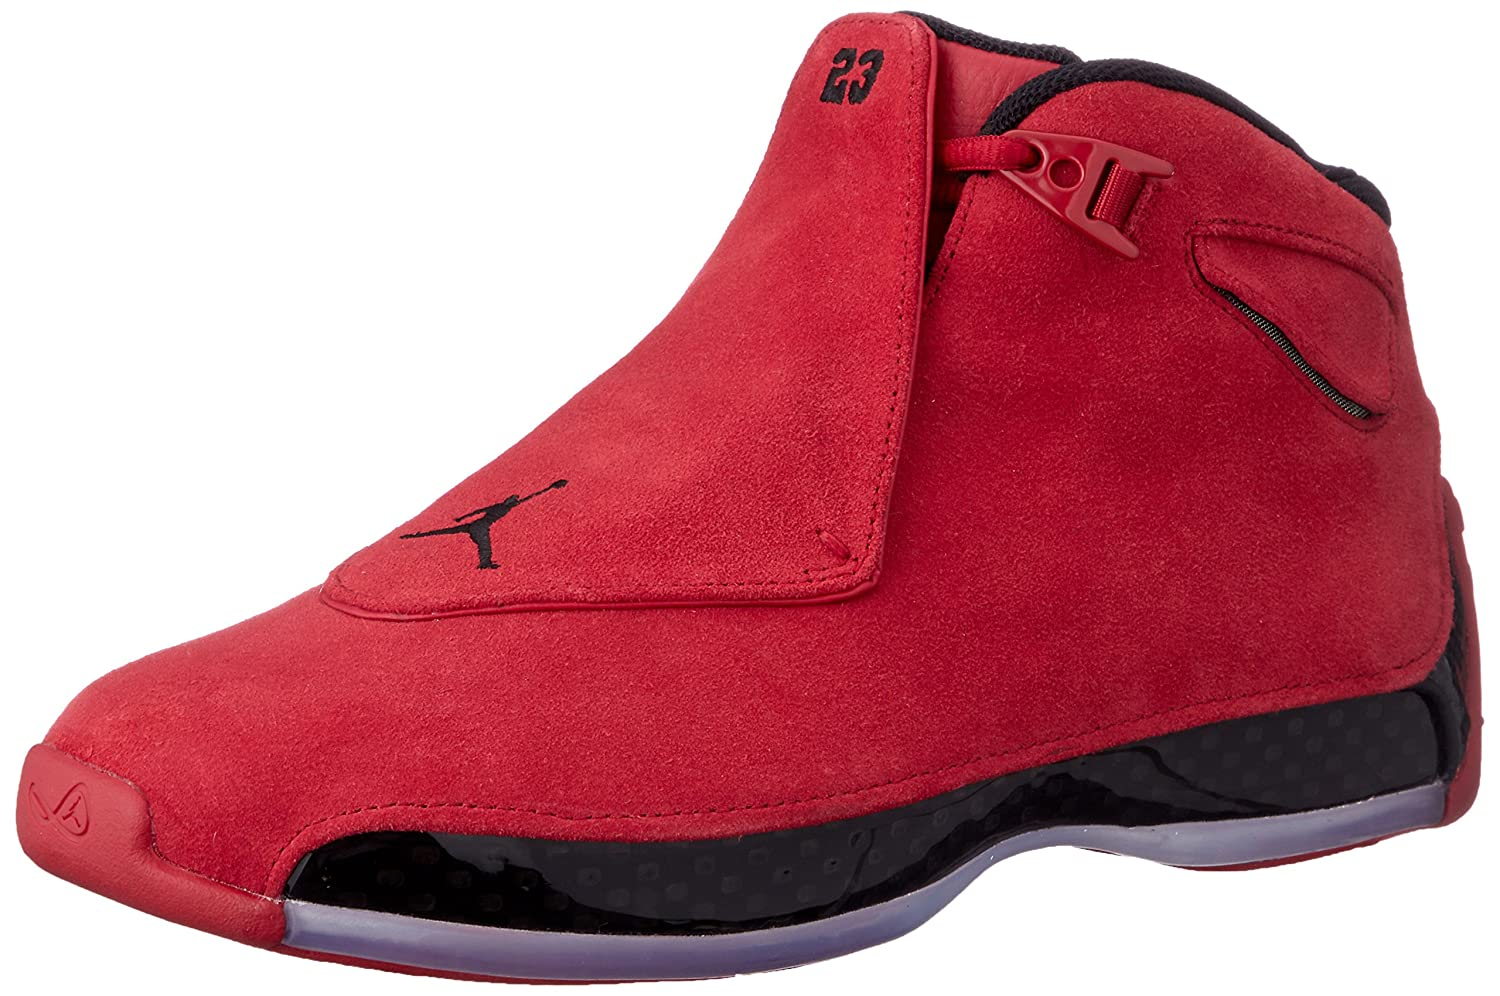 Retro 18 'red Jordan Nike Air Suede'A QtdhrsC